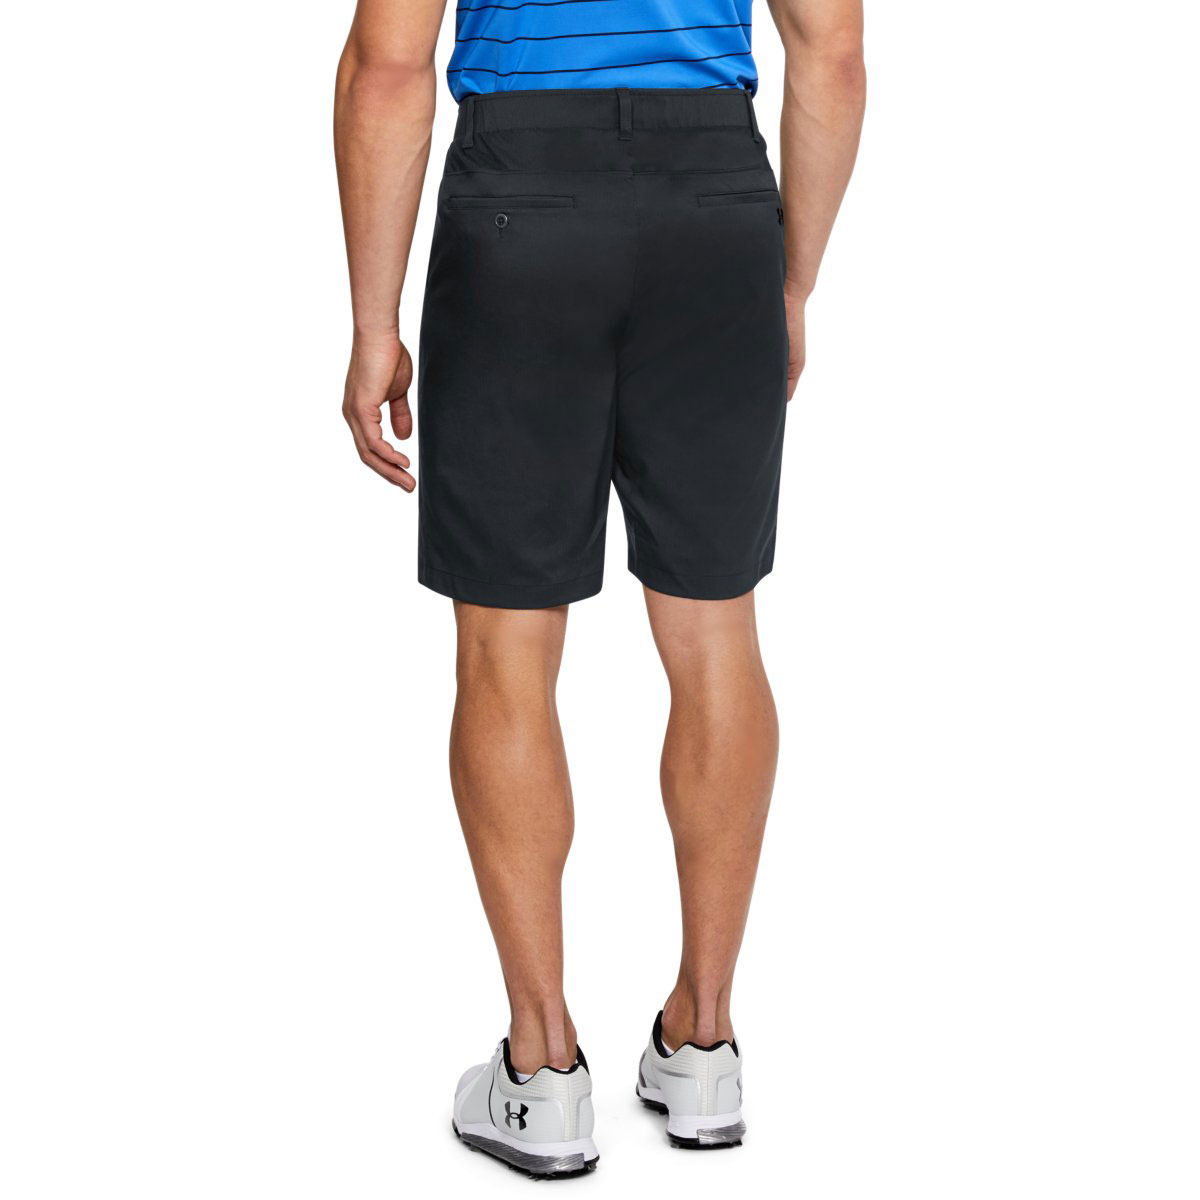 Under-Armour-Mens-Takeover-Taper-Mid-Length-Golf-Shorts-42-OFF-RRP thumbnail 6